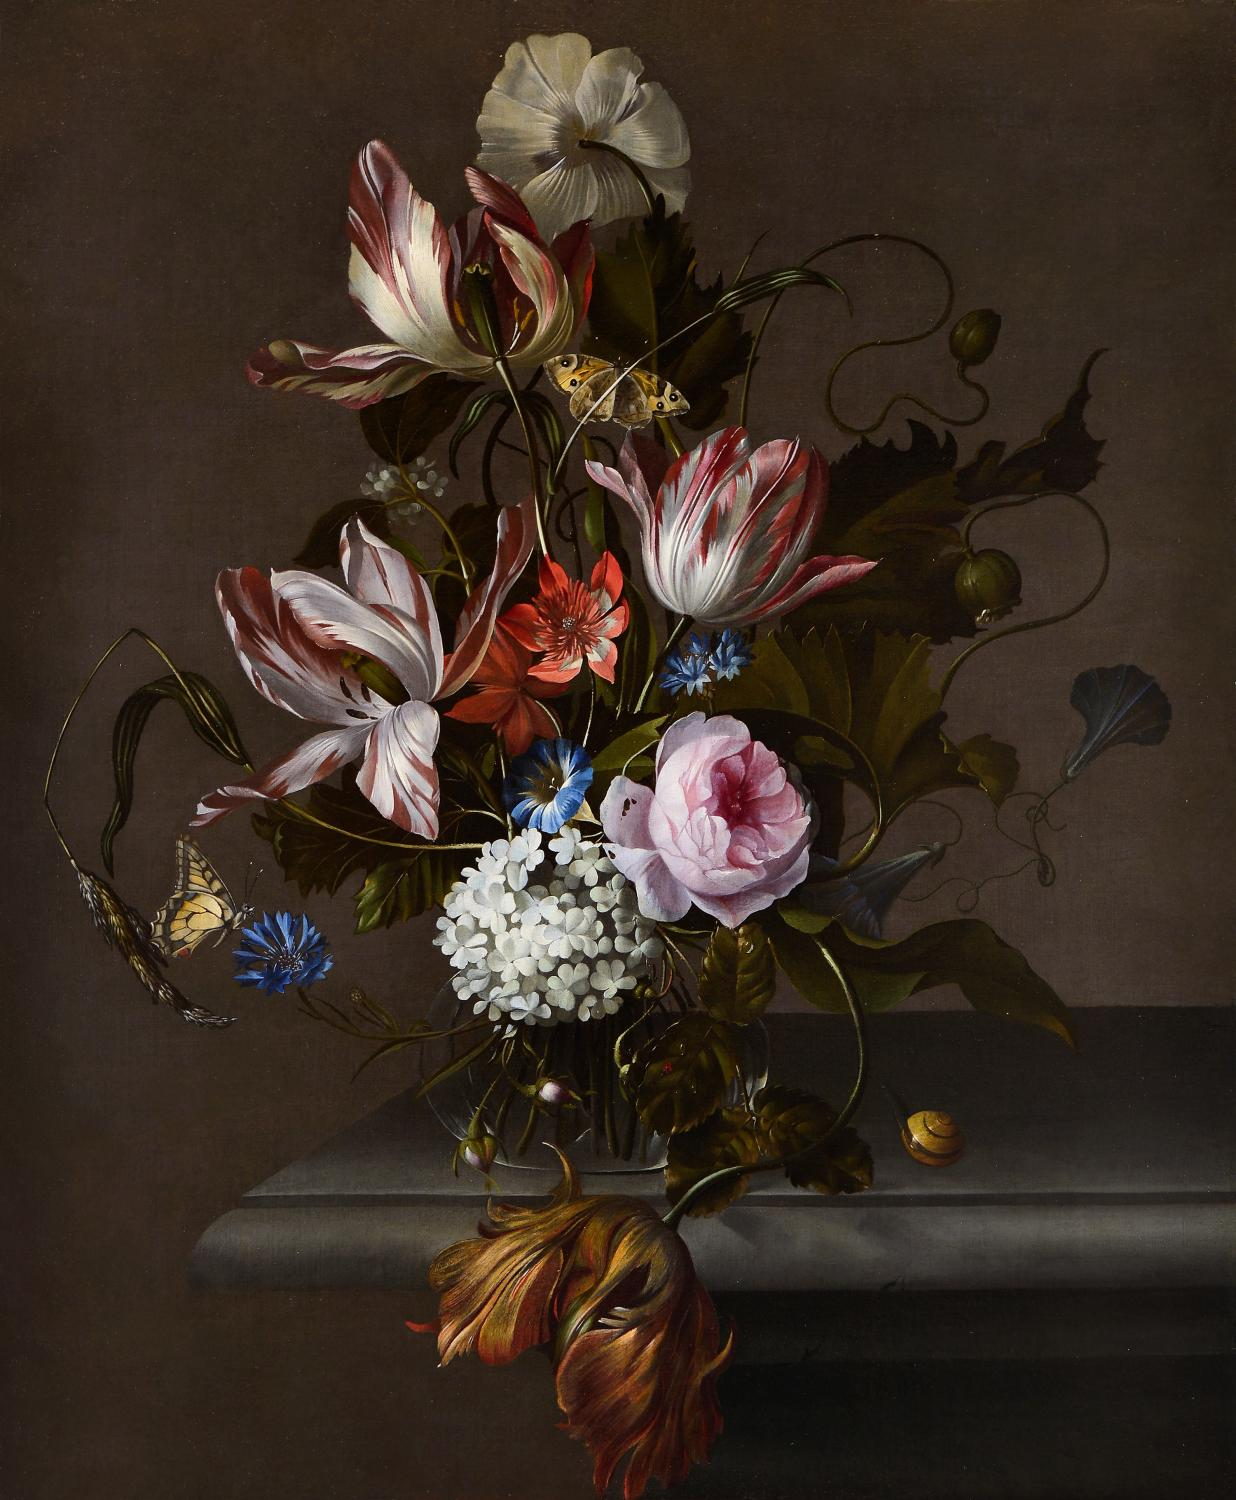 Still life of flowers in a glass vase on a stone table ledge anna ruysch still life of flowers in a glass vase on a stone table ledge izmirmasajfo